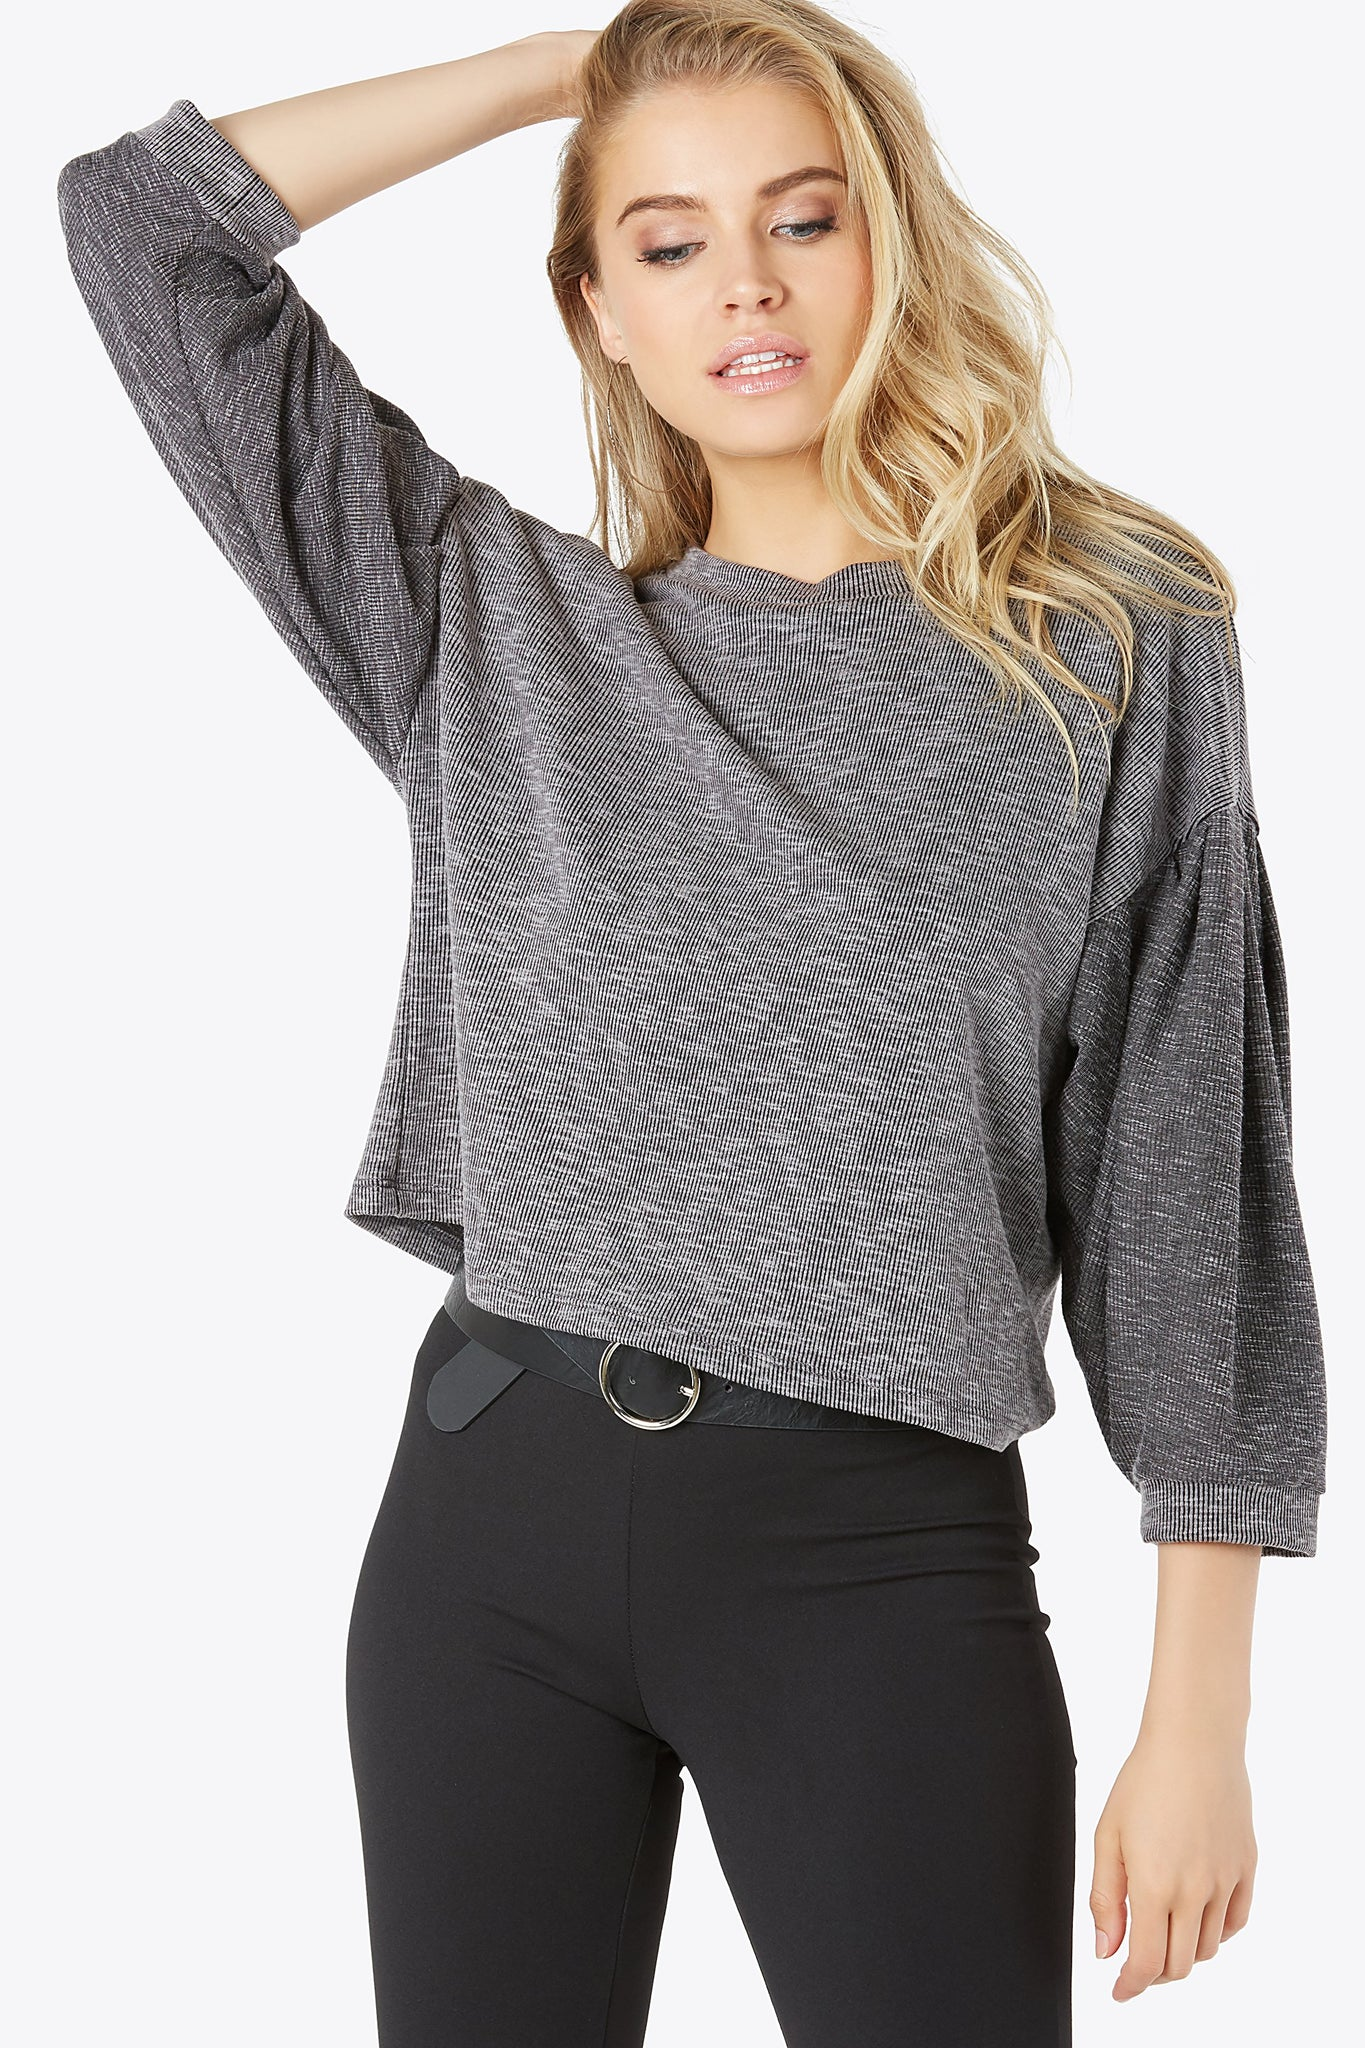 Sleeve Me Alone Top